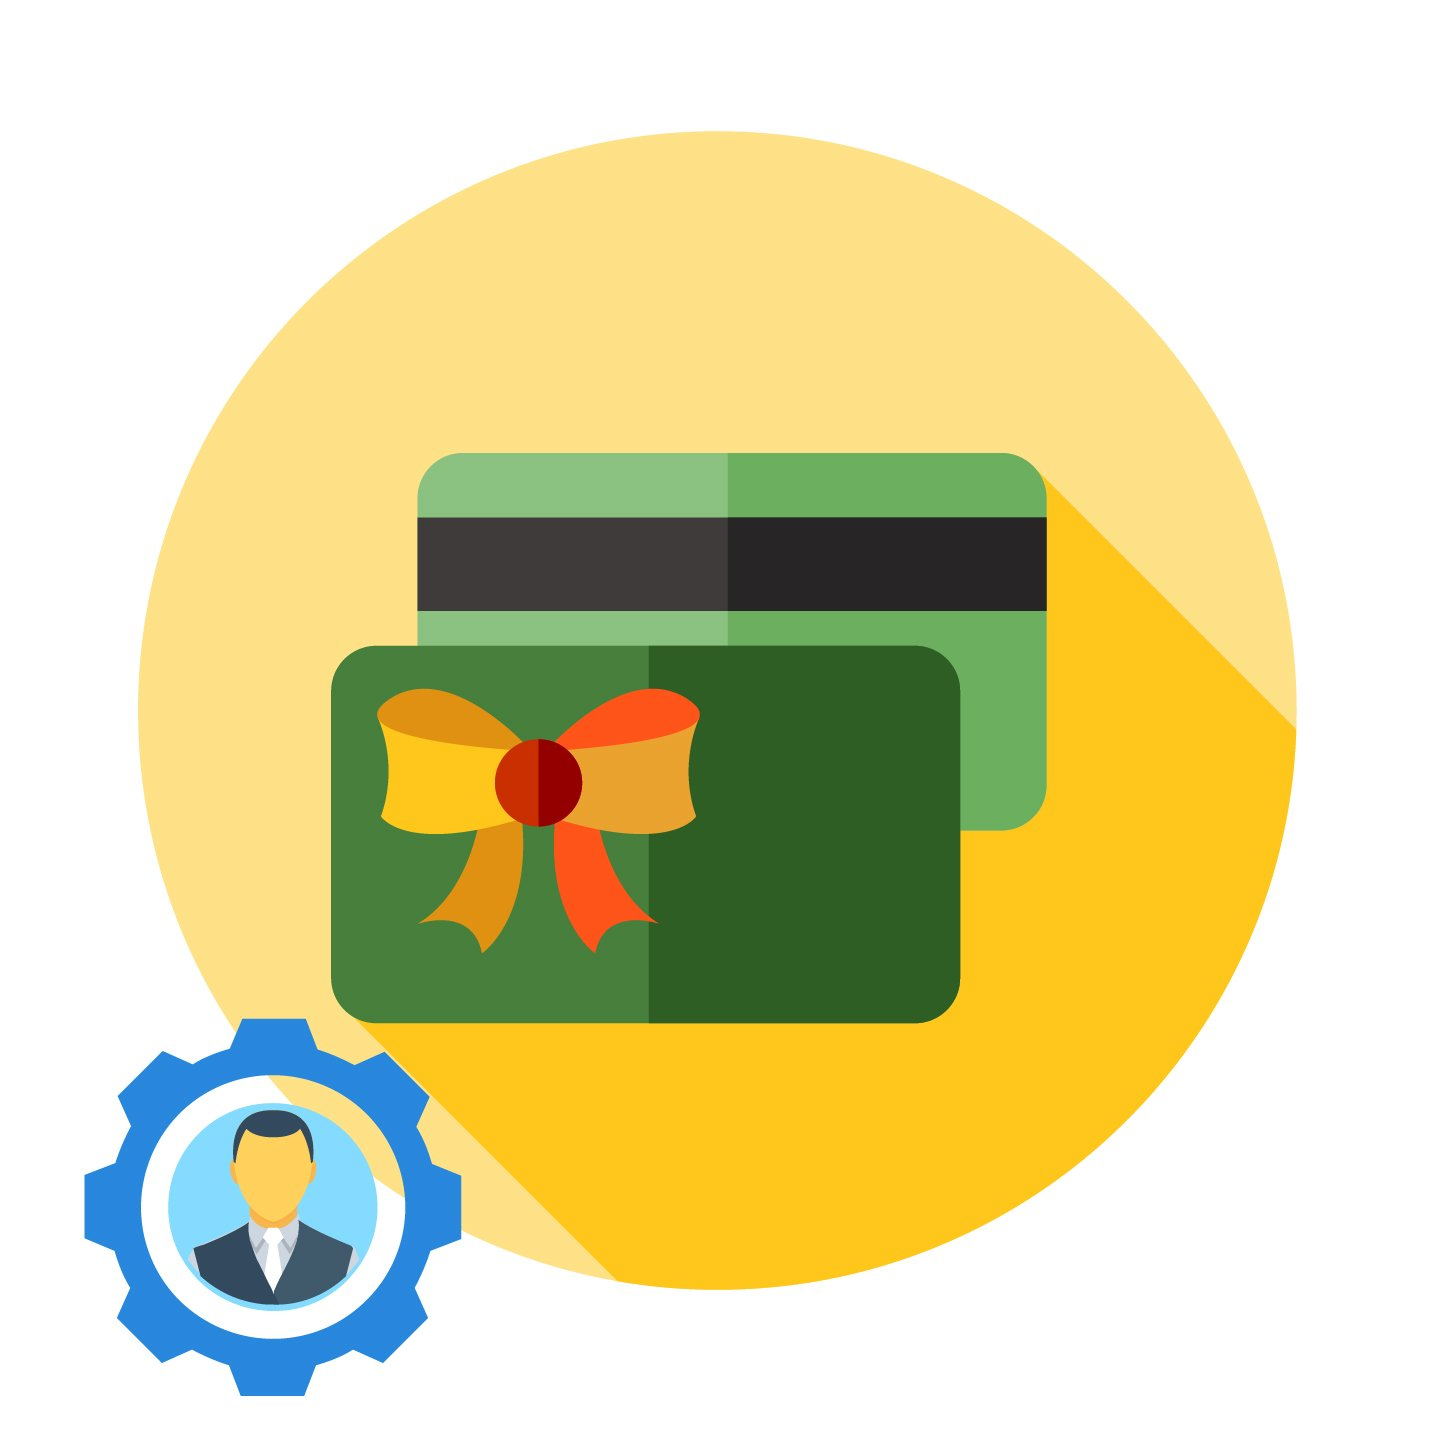 Woocommerce gift card magenest e commerce expert manage gift card usage xflitez Image collections